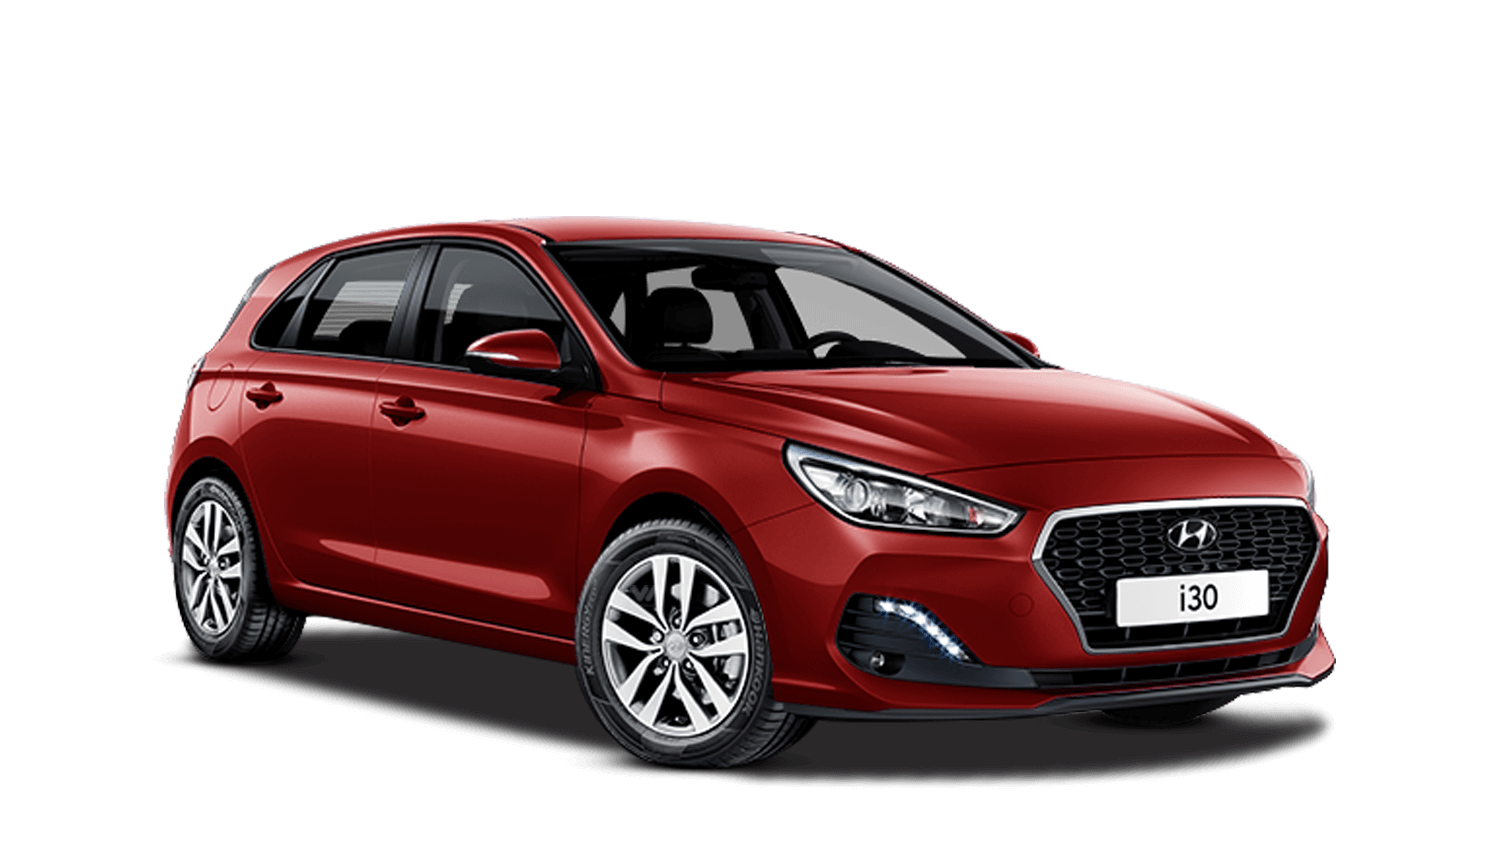 Fiery Red Hyundai I30